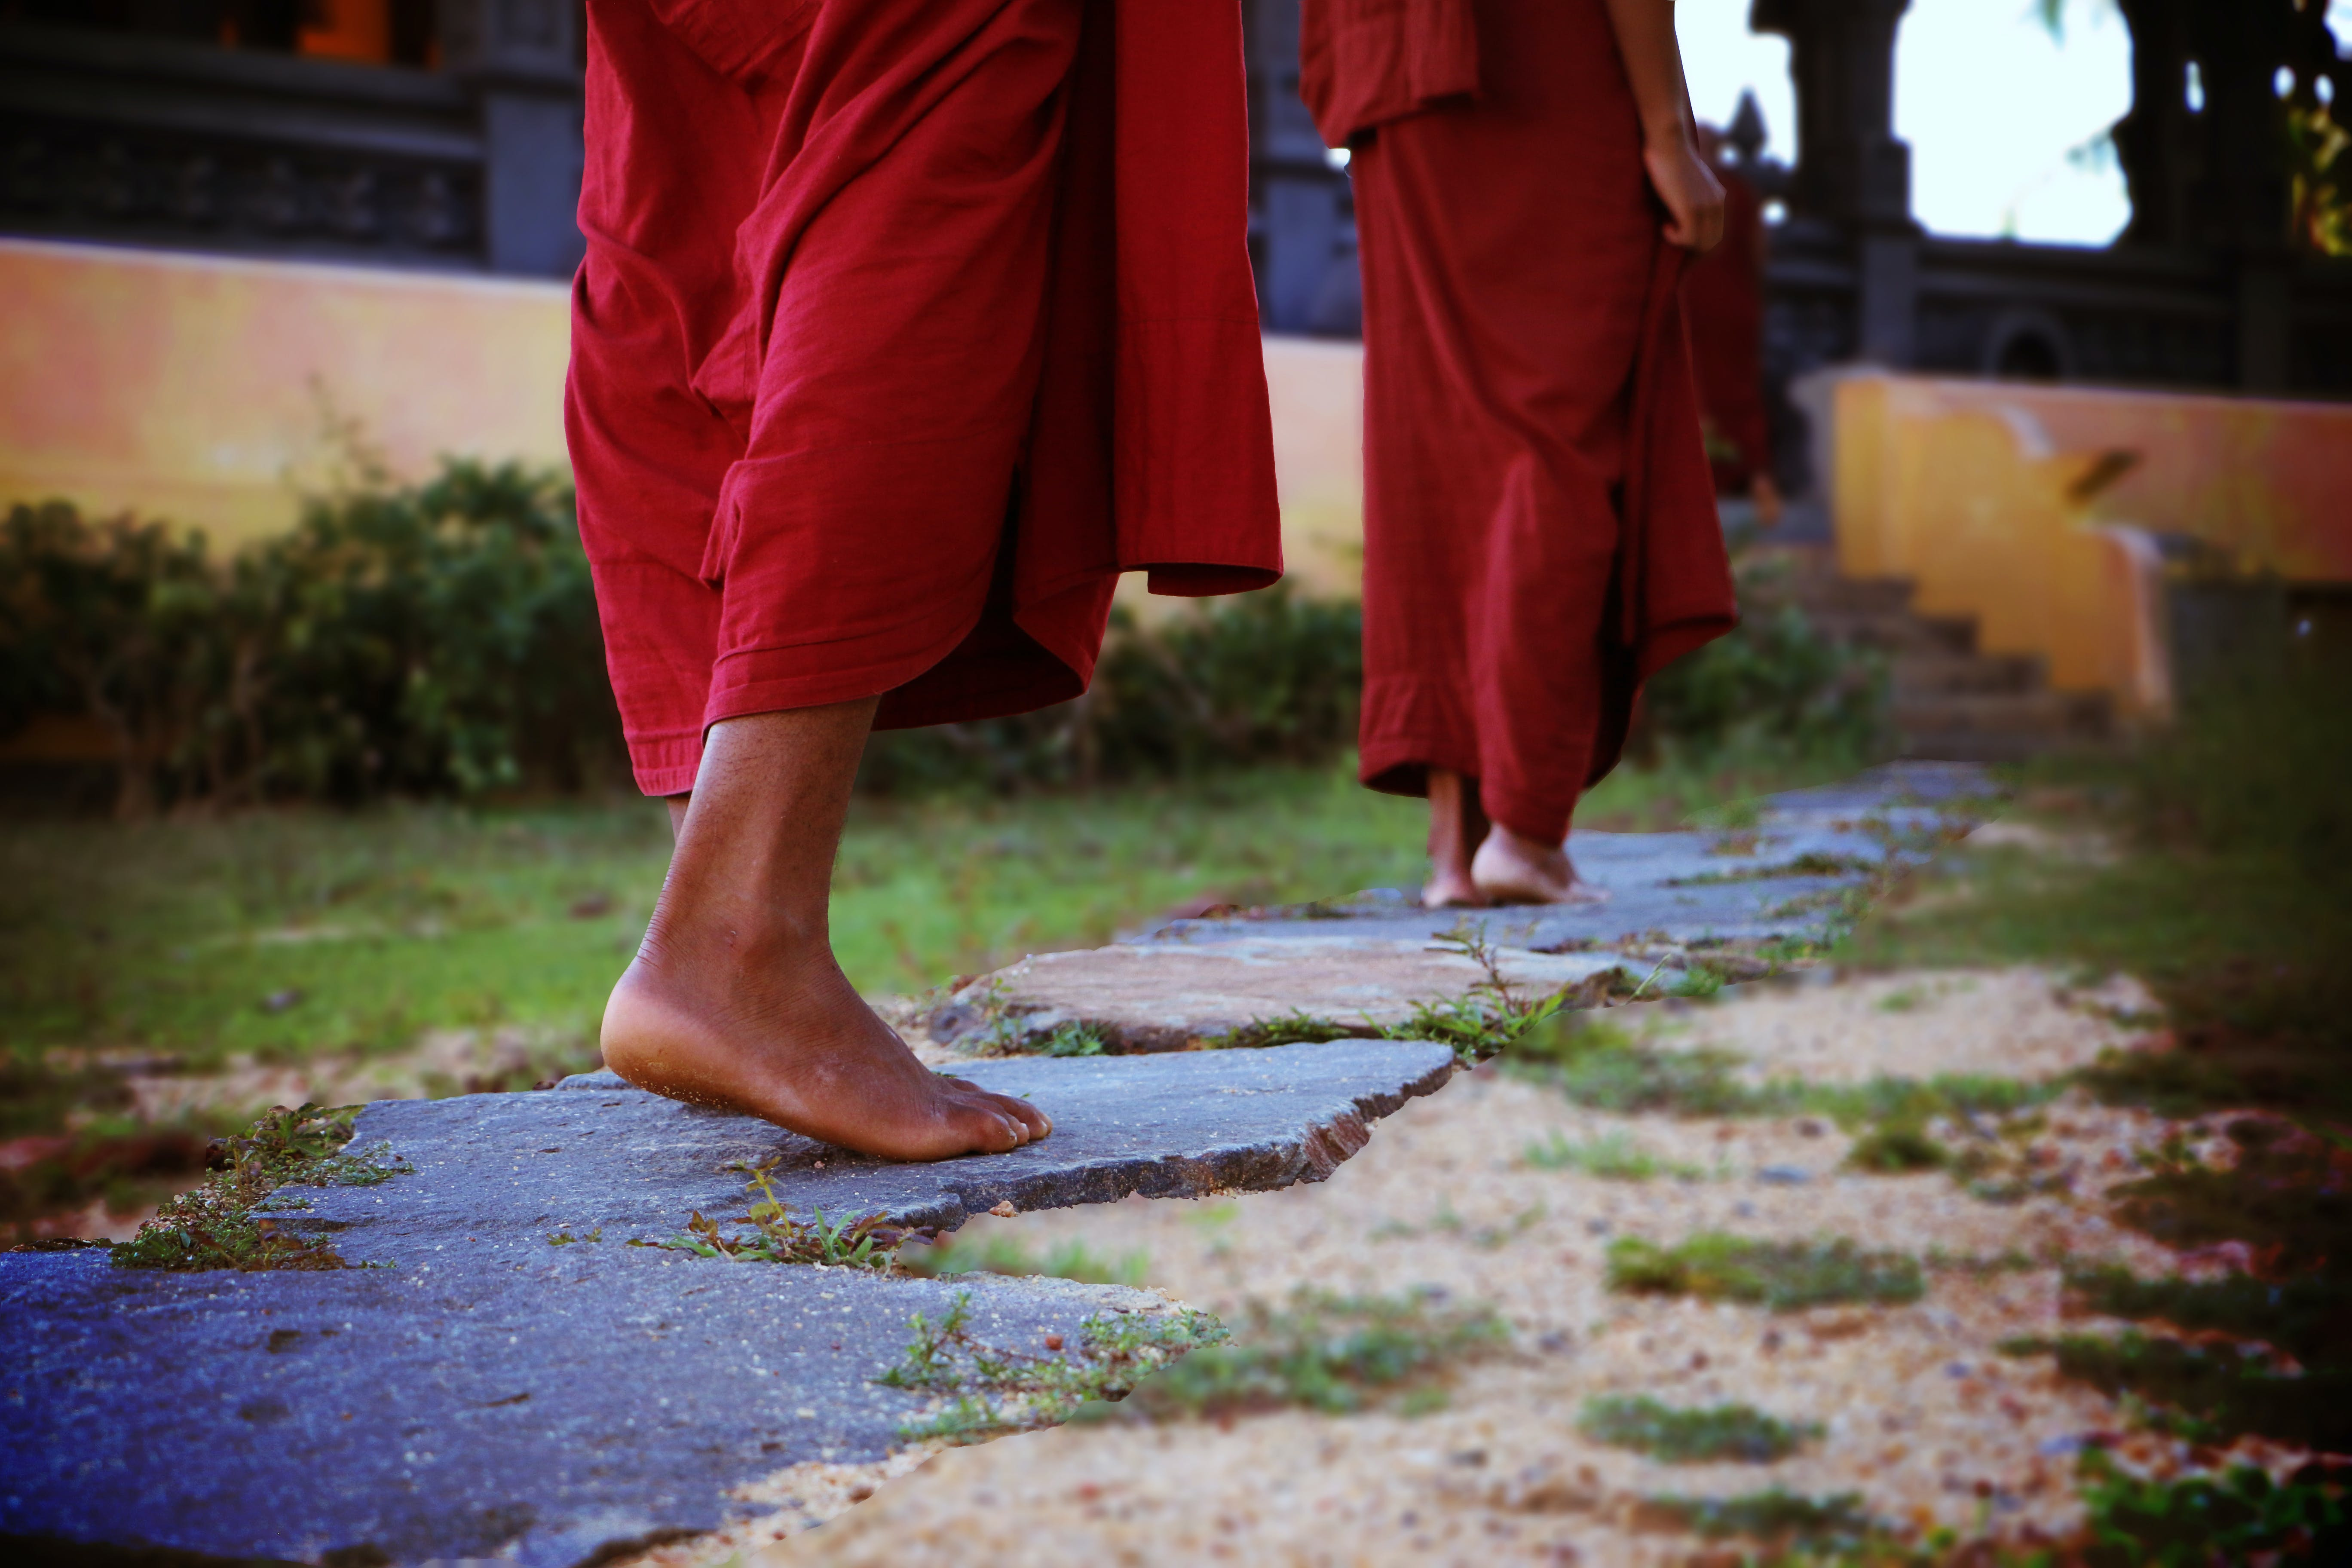 Two Human Wearing Monk Dress Walking on the Pathway